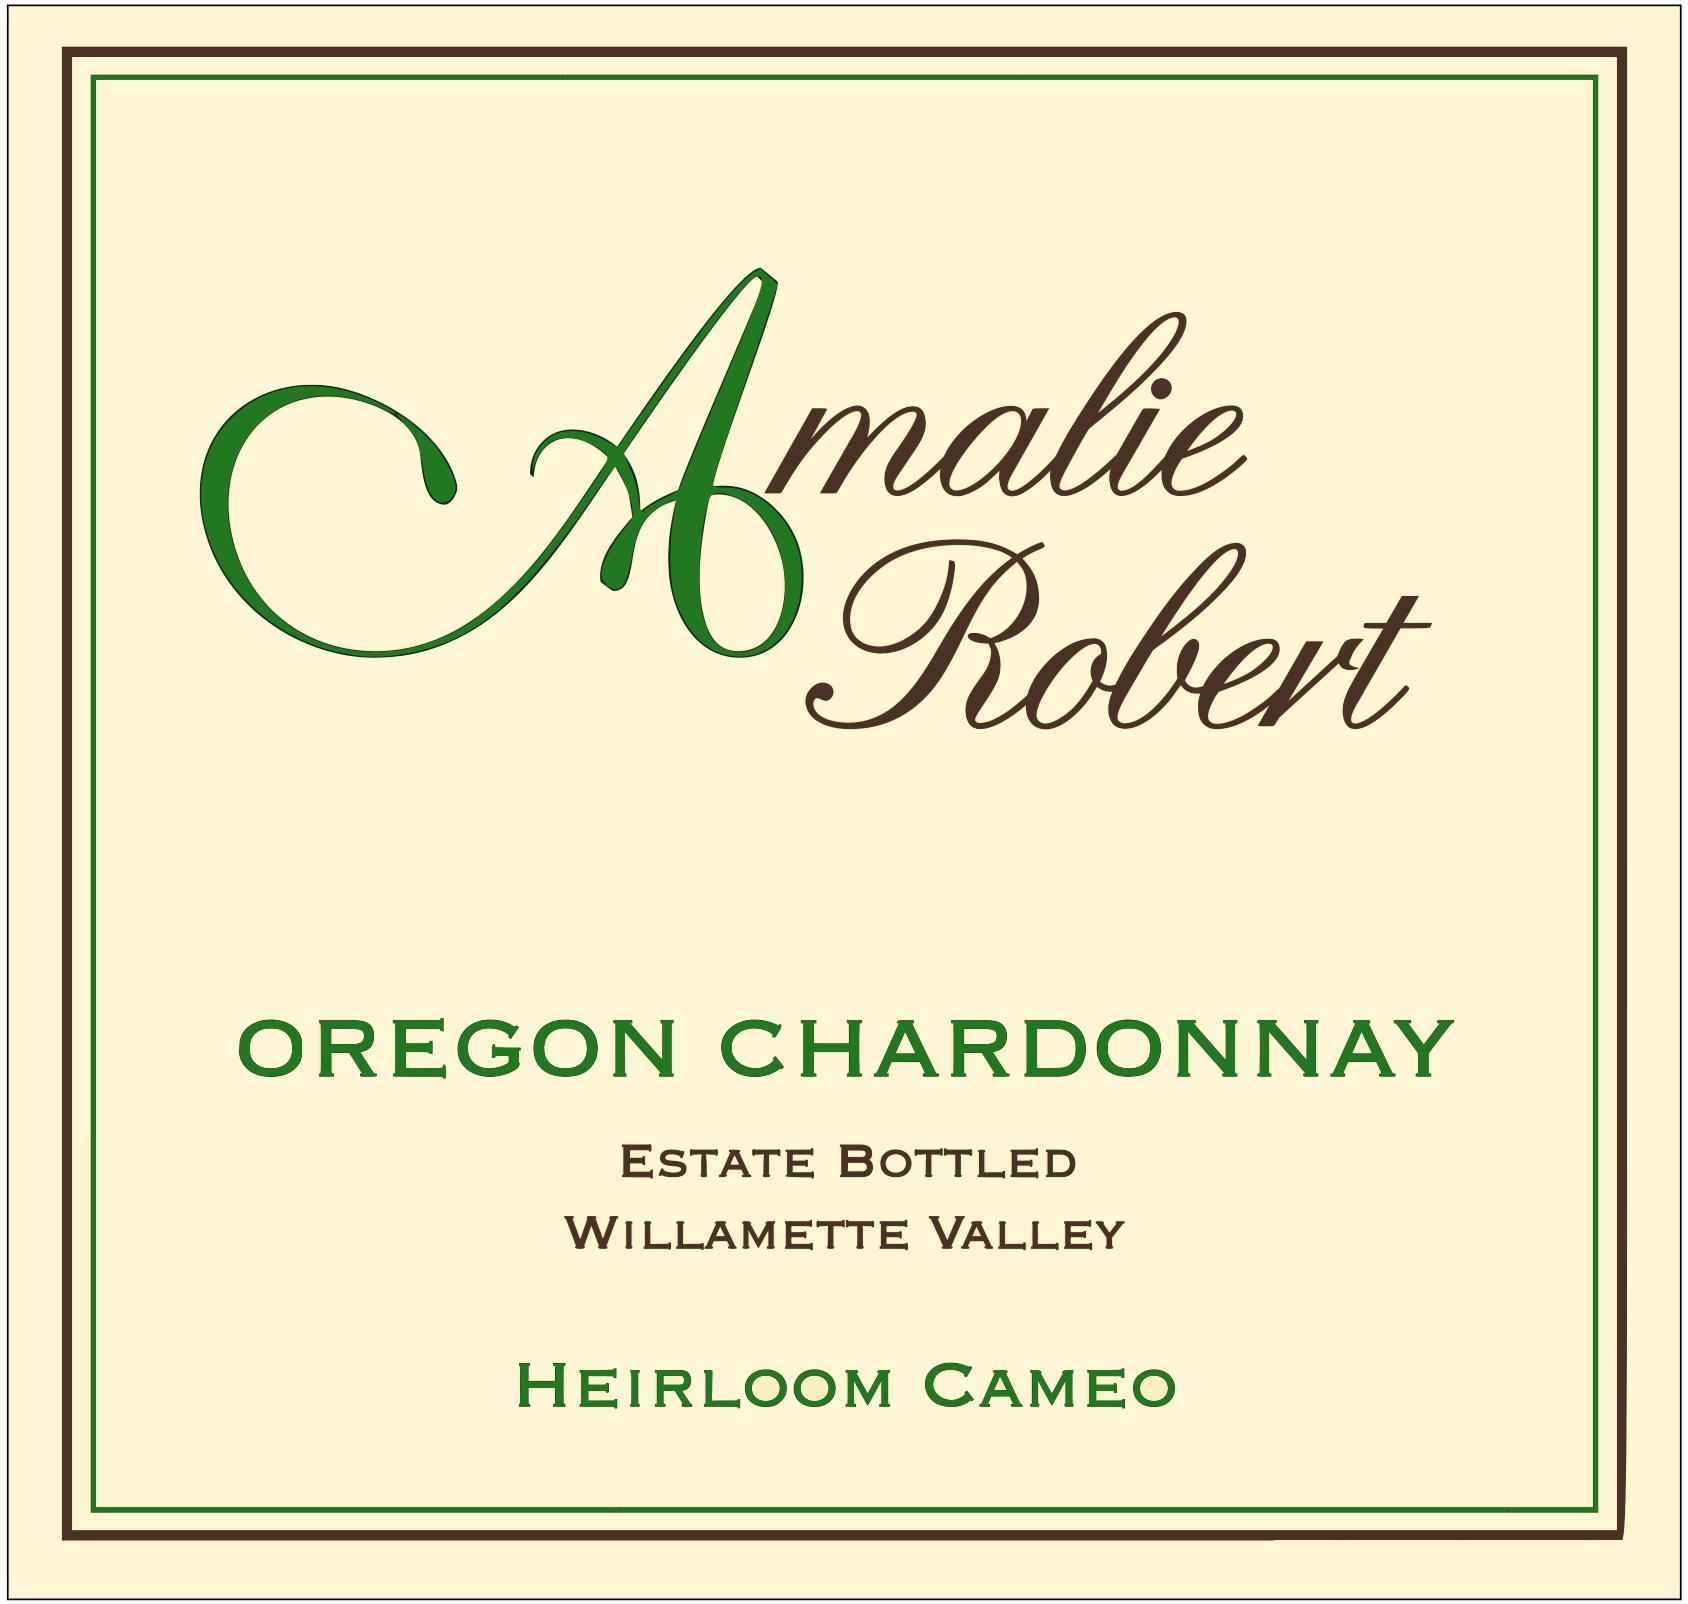 2015 Heirloom Cameo Chardonnay - 93 pts Vinous MAIN